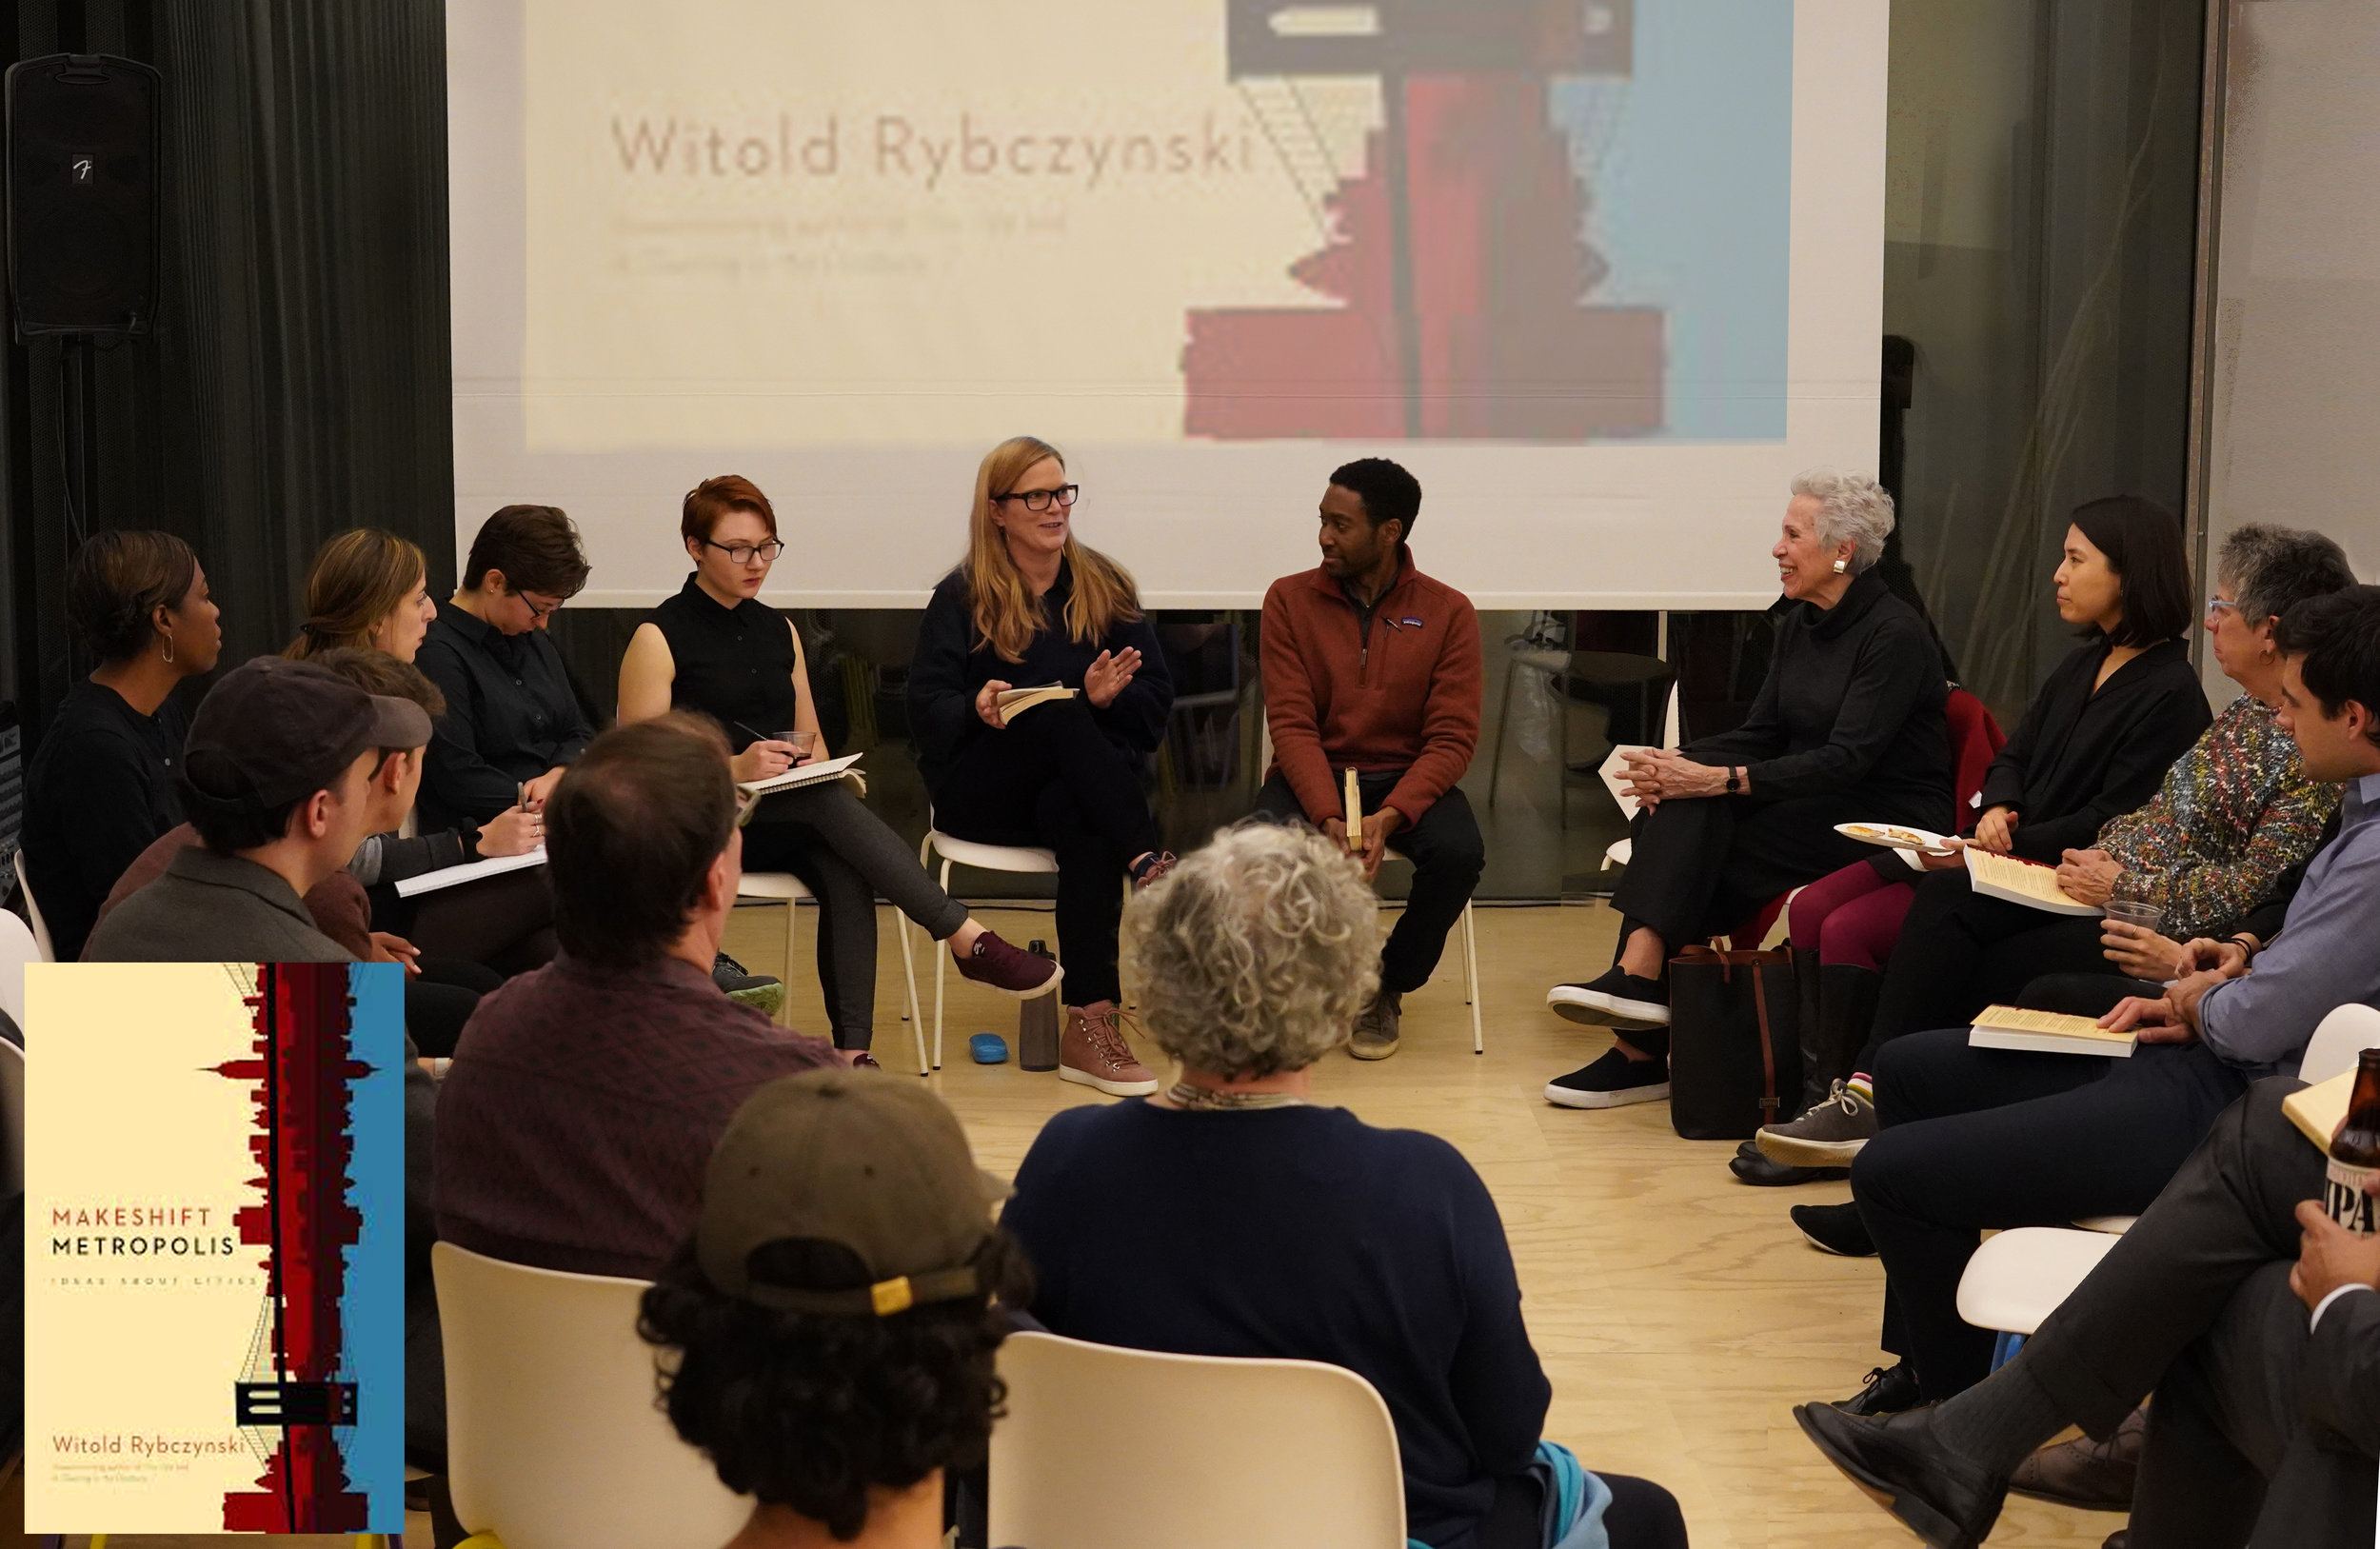 Faith Rose moderates a discussion on Witold Rybcynski's  Makeshift Metropolis  as part of the 2018 festival City-Making from the Outside In.